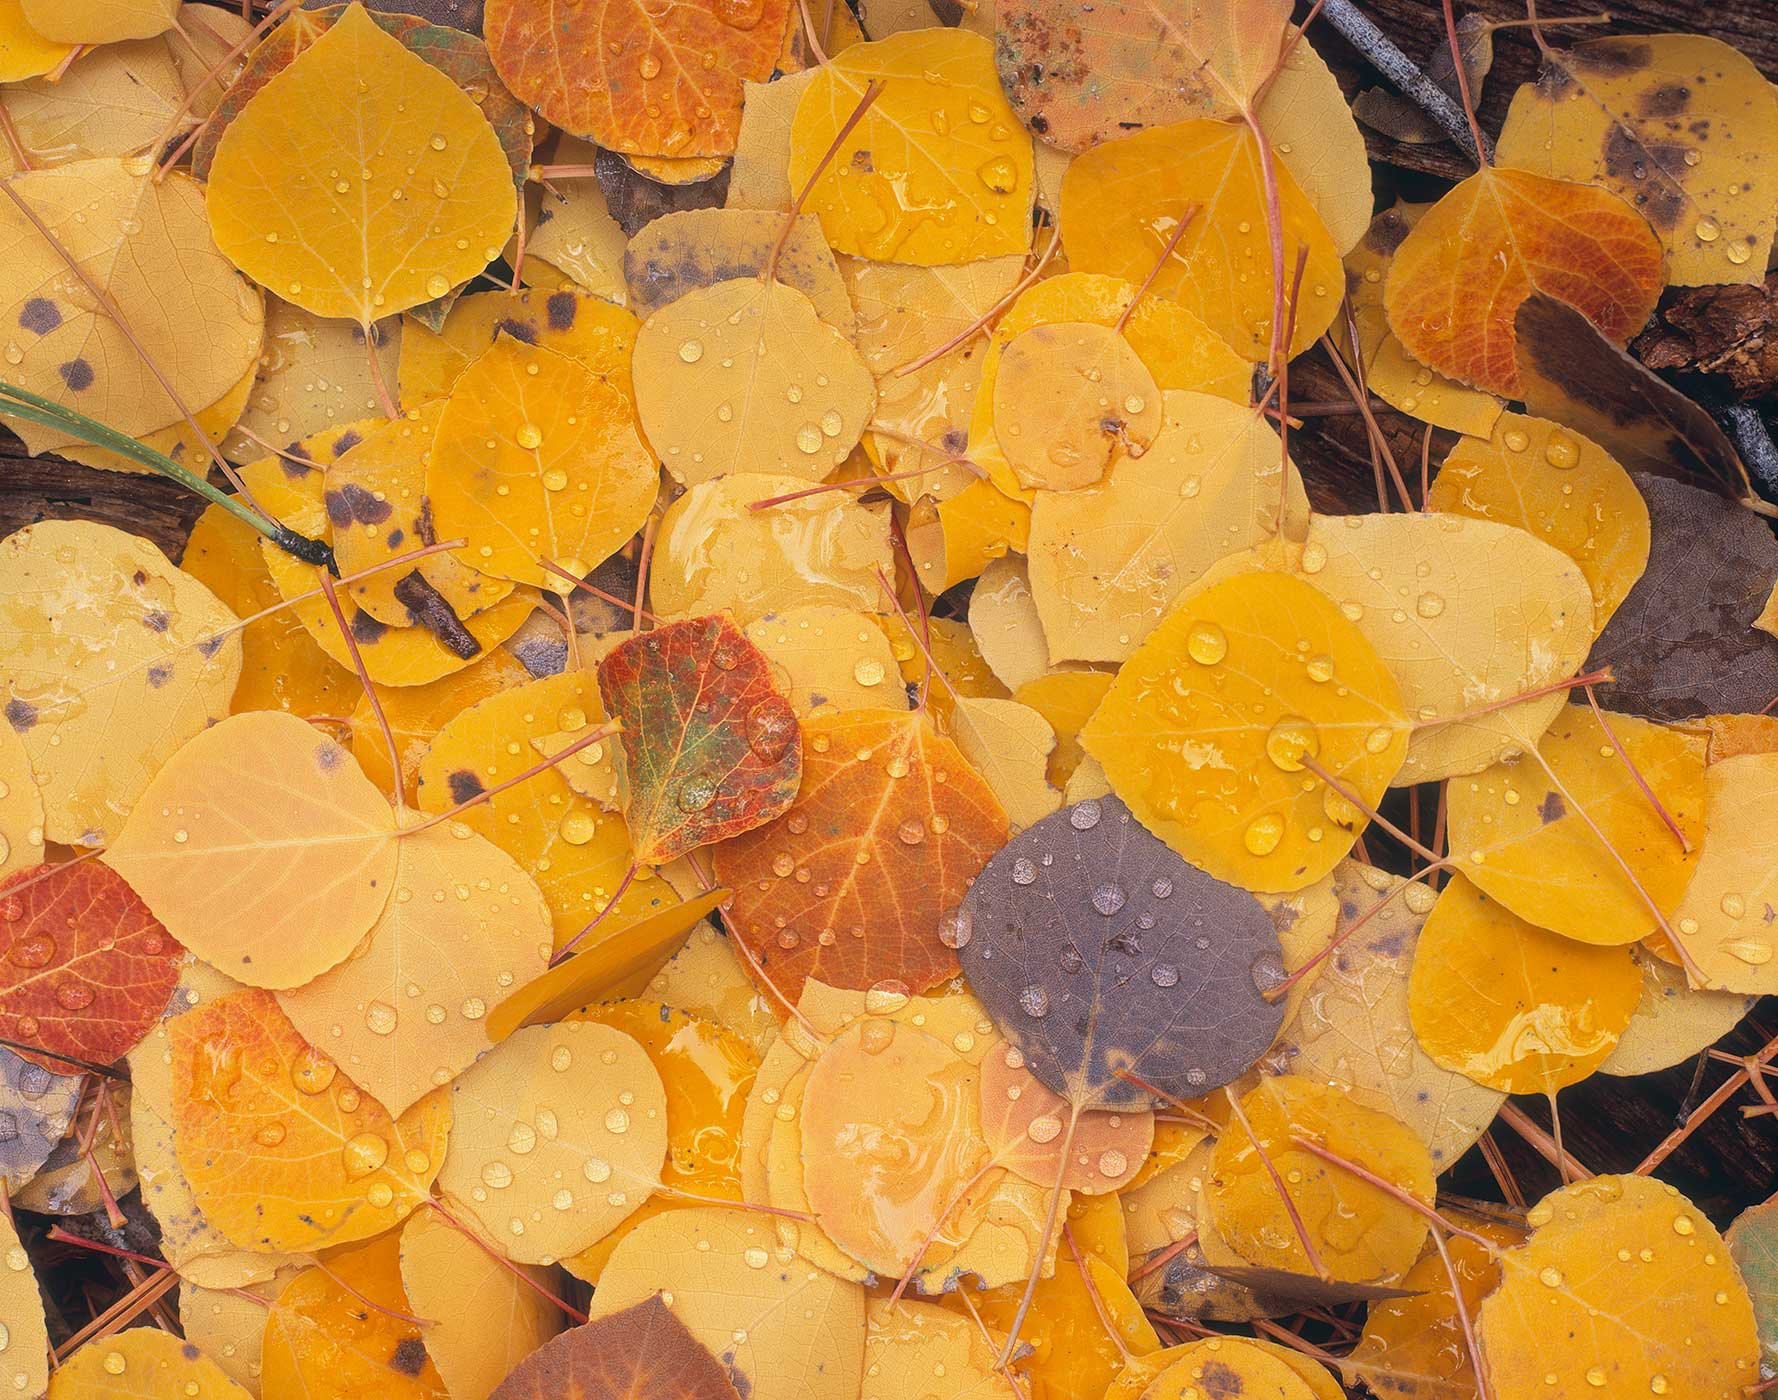 302 Aspen Leaves after Rain, Coconino National Forest, ArizonaAspens Leaves after the Rain Coconino National Forest, Arizona